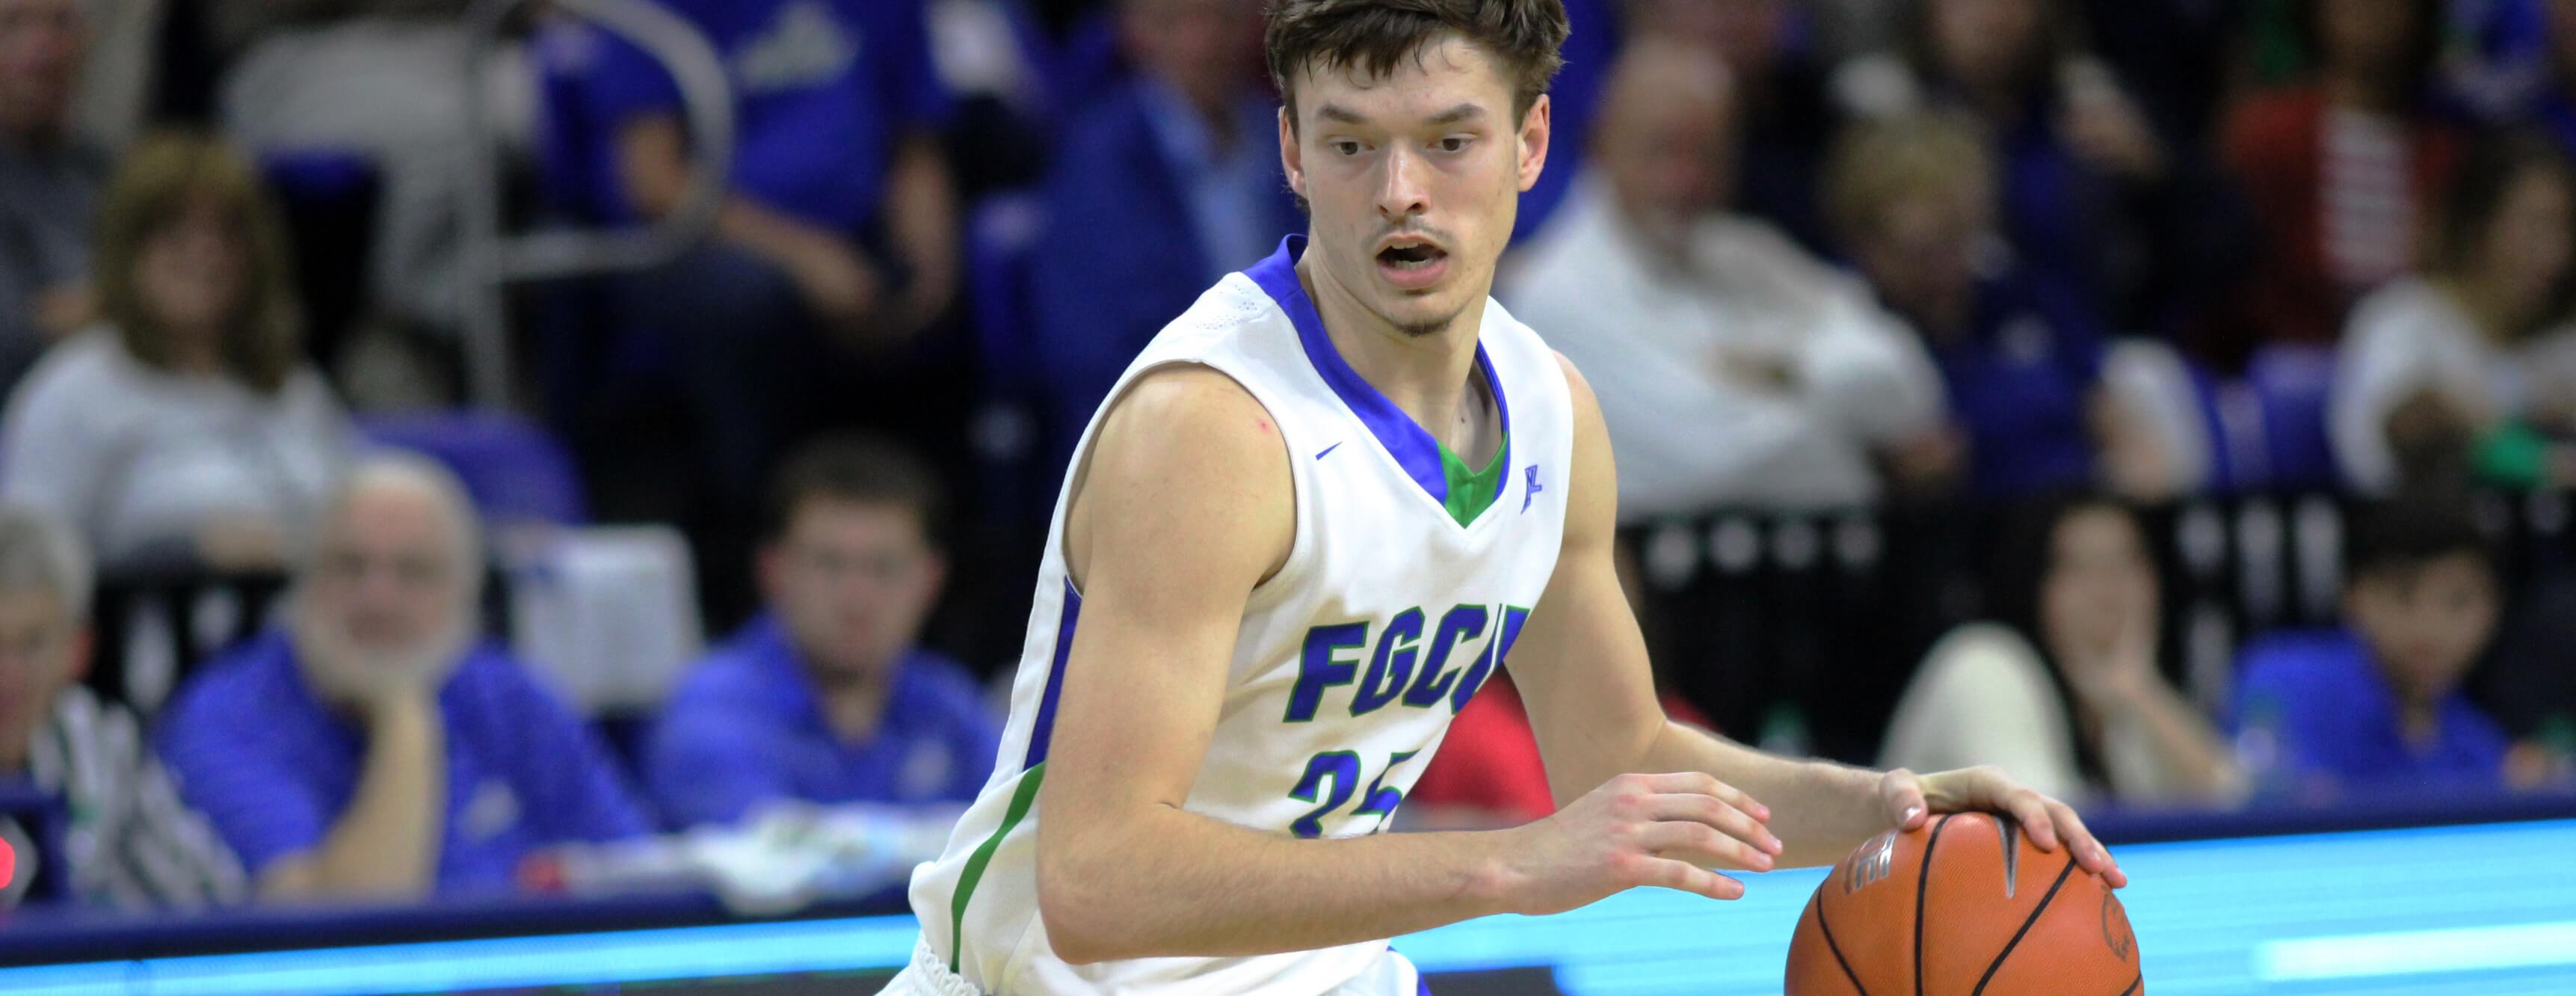 Christian Terrell makes immediate impact for FGCU